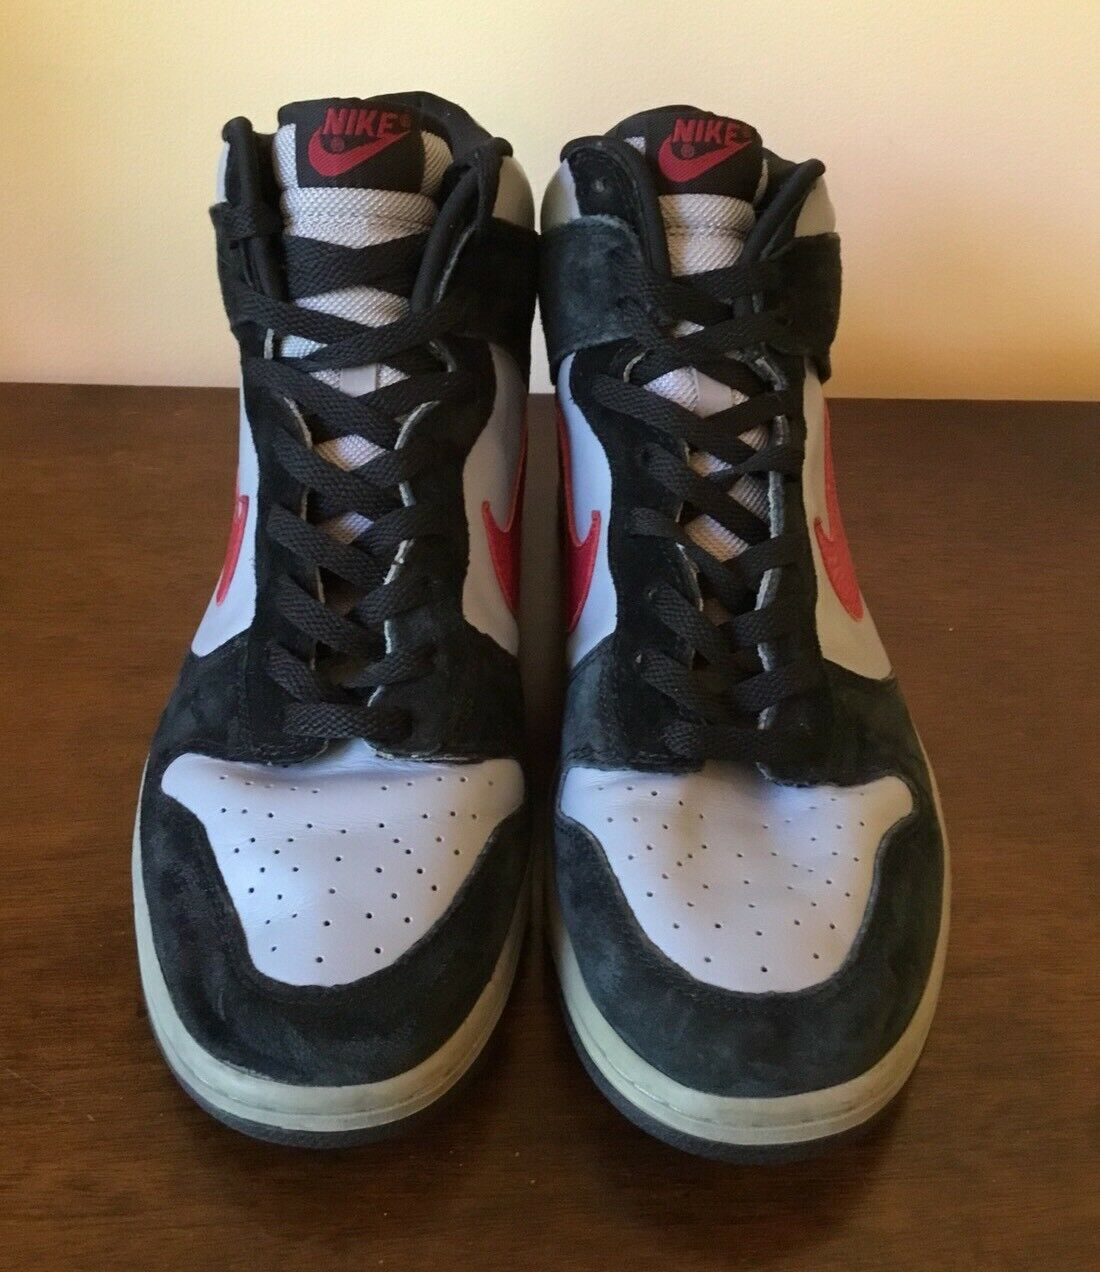 939b4c56373ce7 Nike Dunk High Gray Black       Red Athletic Sneakers 040608 304717 061 -  Men s 12 50db8c